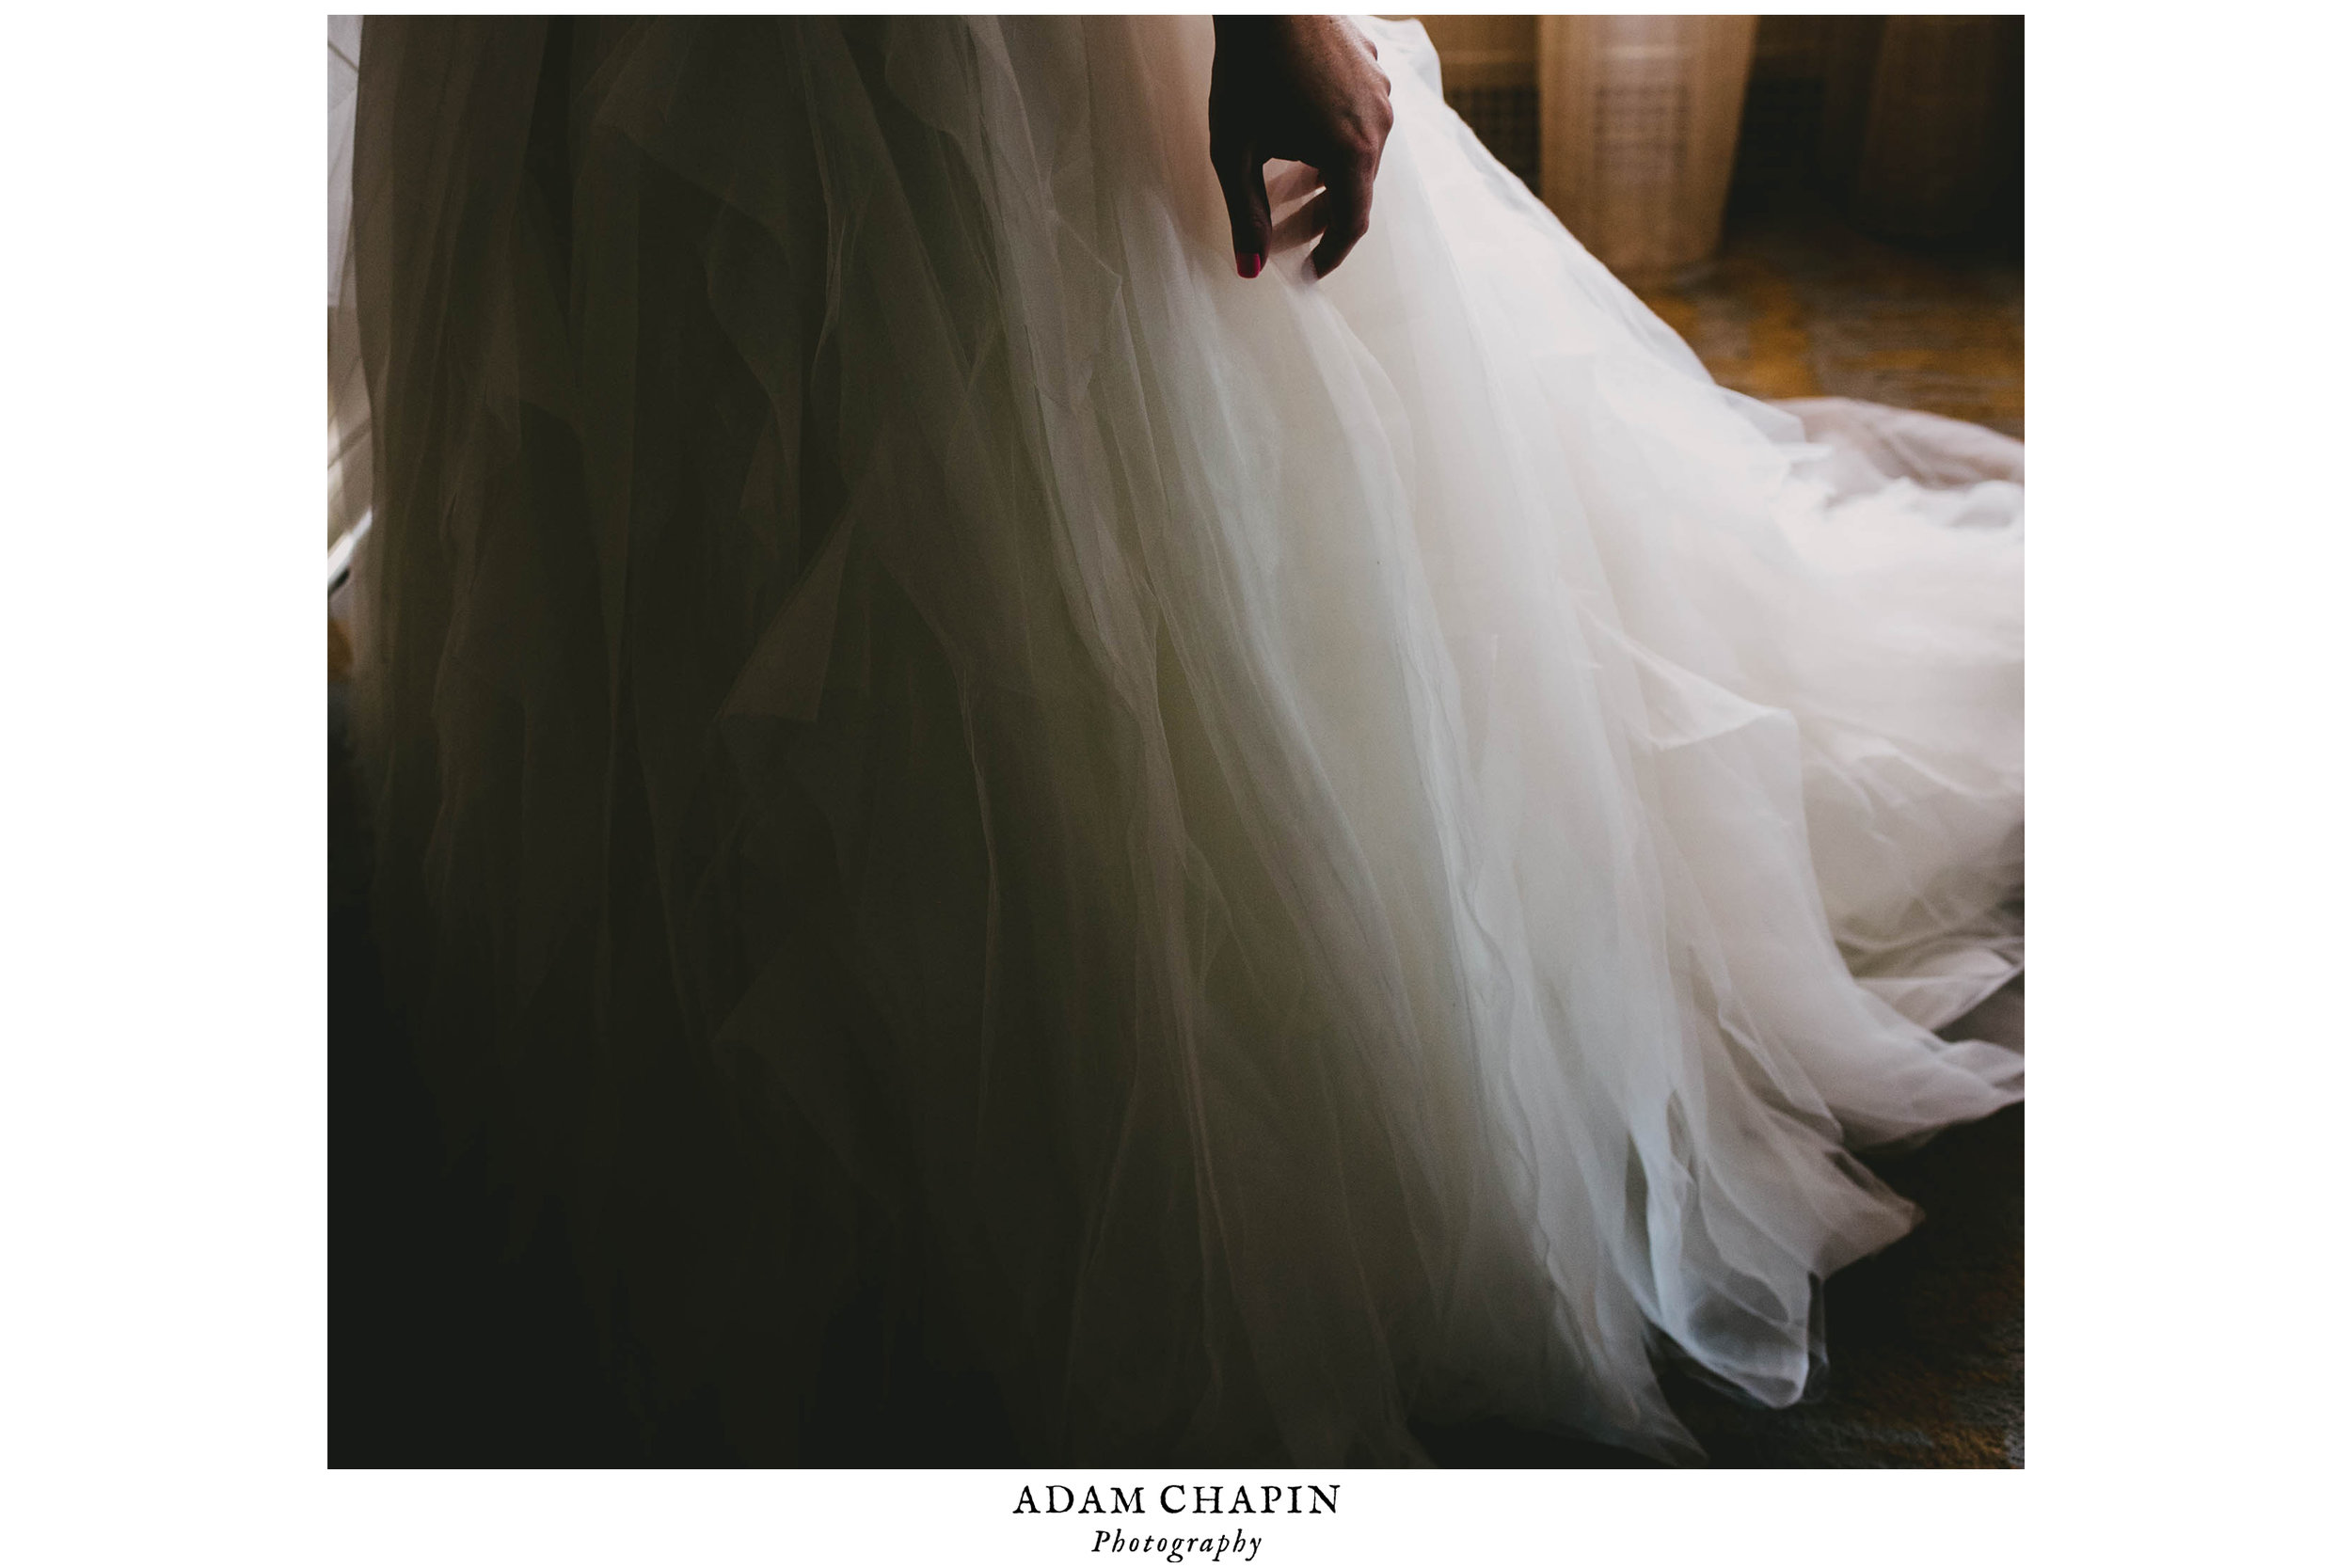 moody details of brides dress